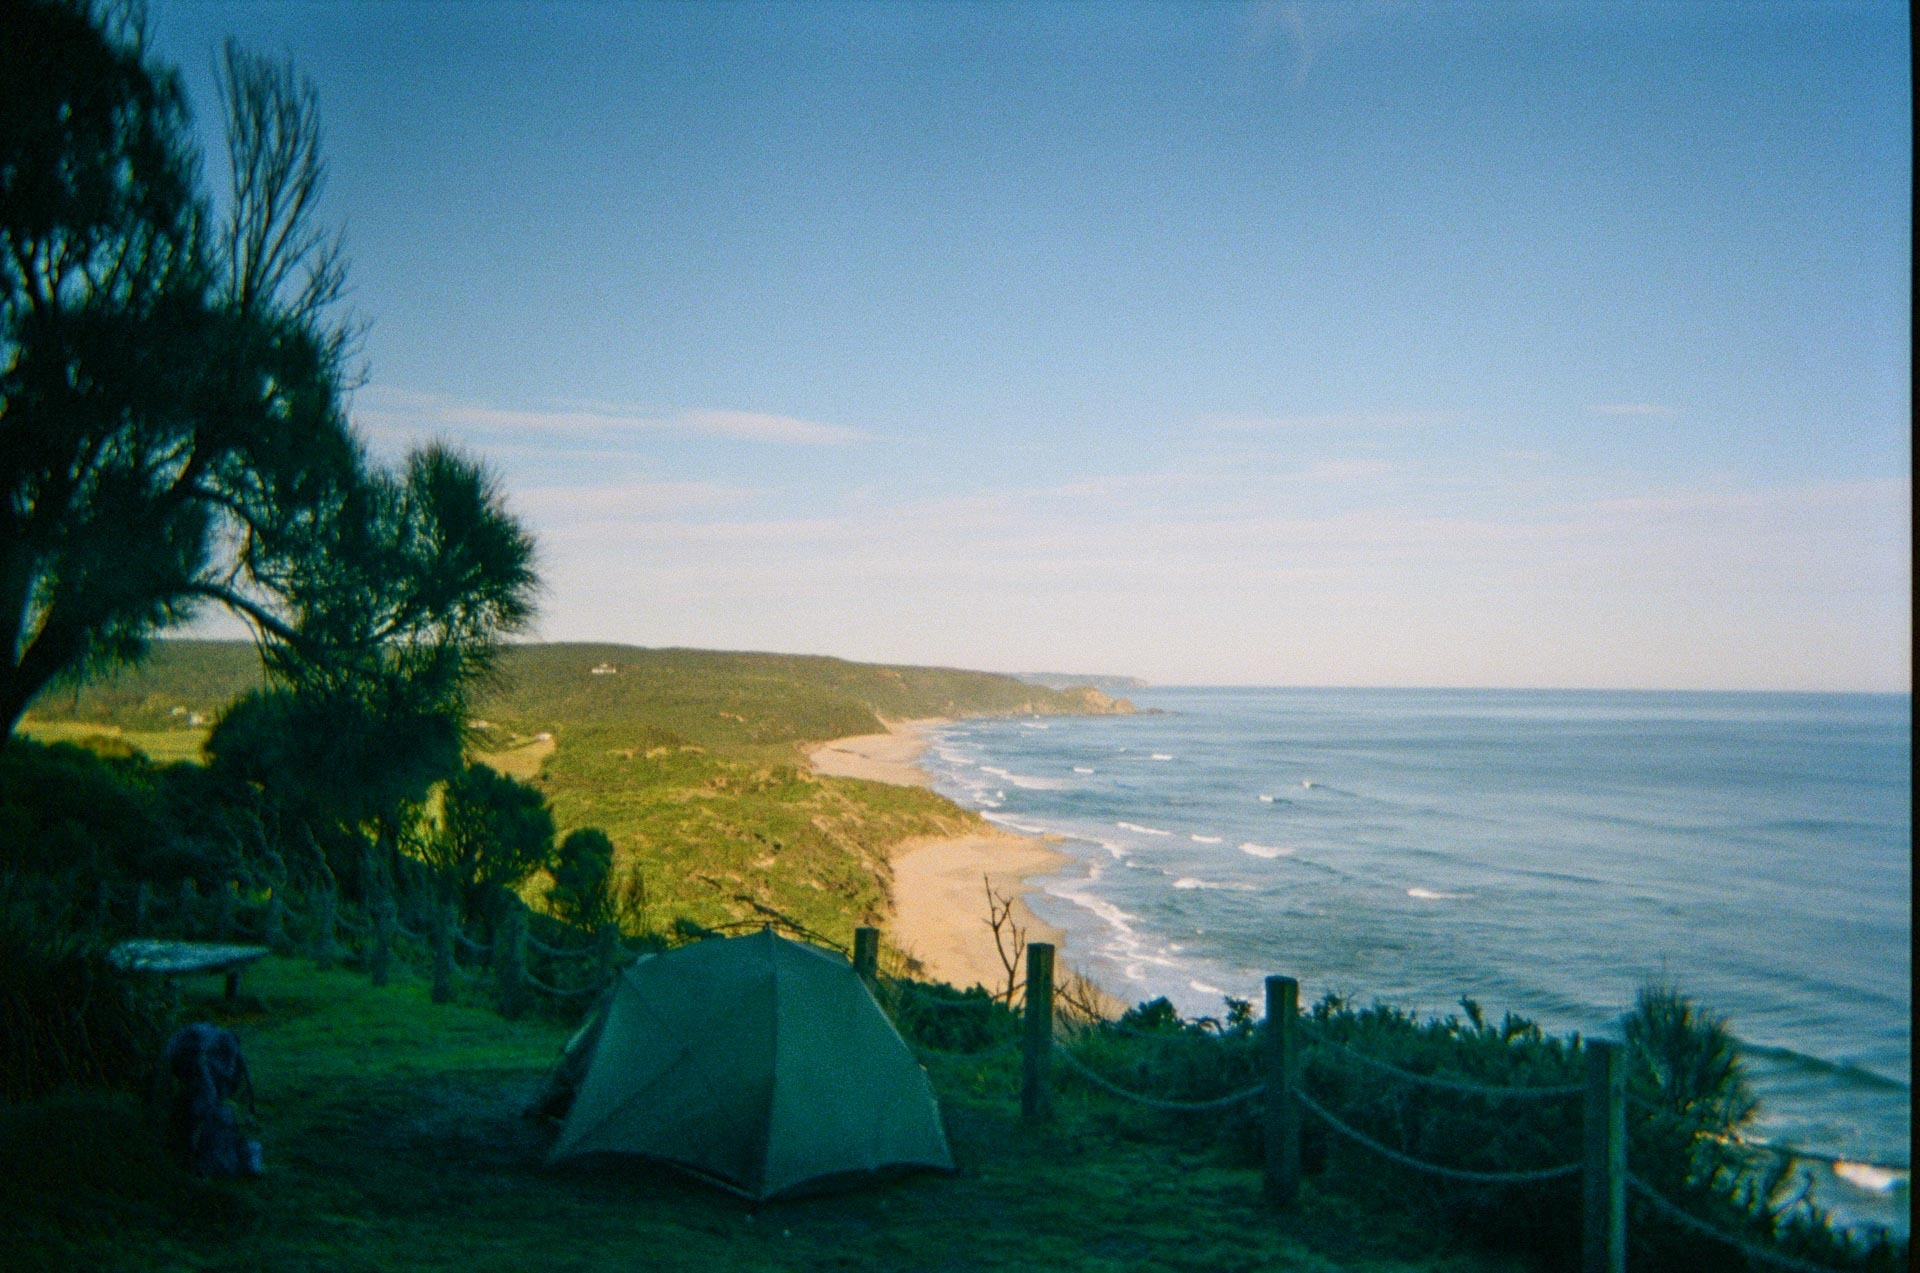 6 Things I Learned in 6 Days on the Great Ocean Walk, Zoe parsons, great ocean walk, victoria, film, campsite, tent, beach, coast